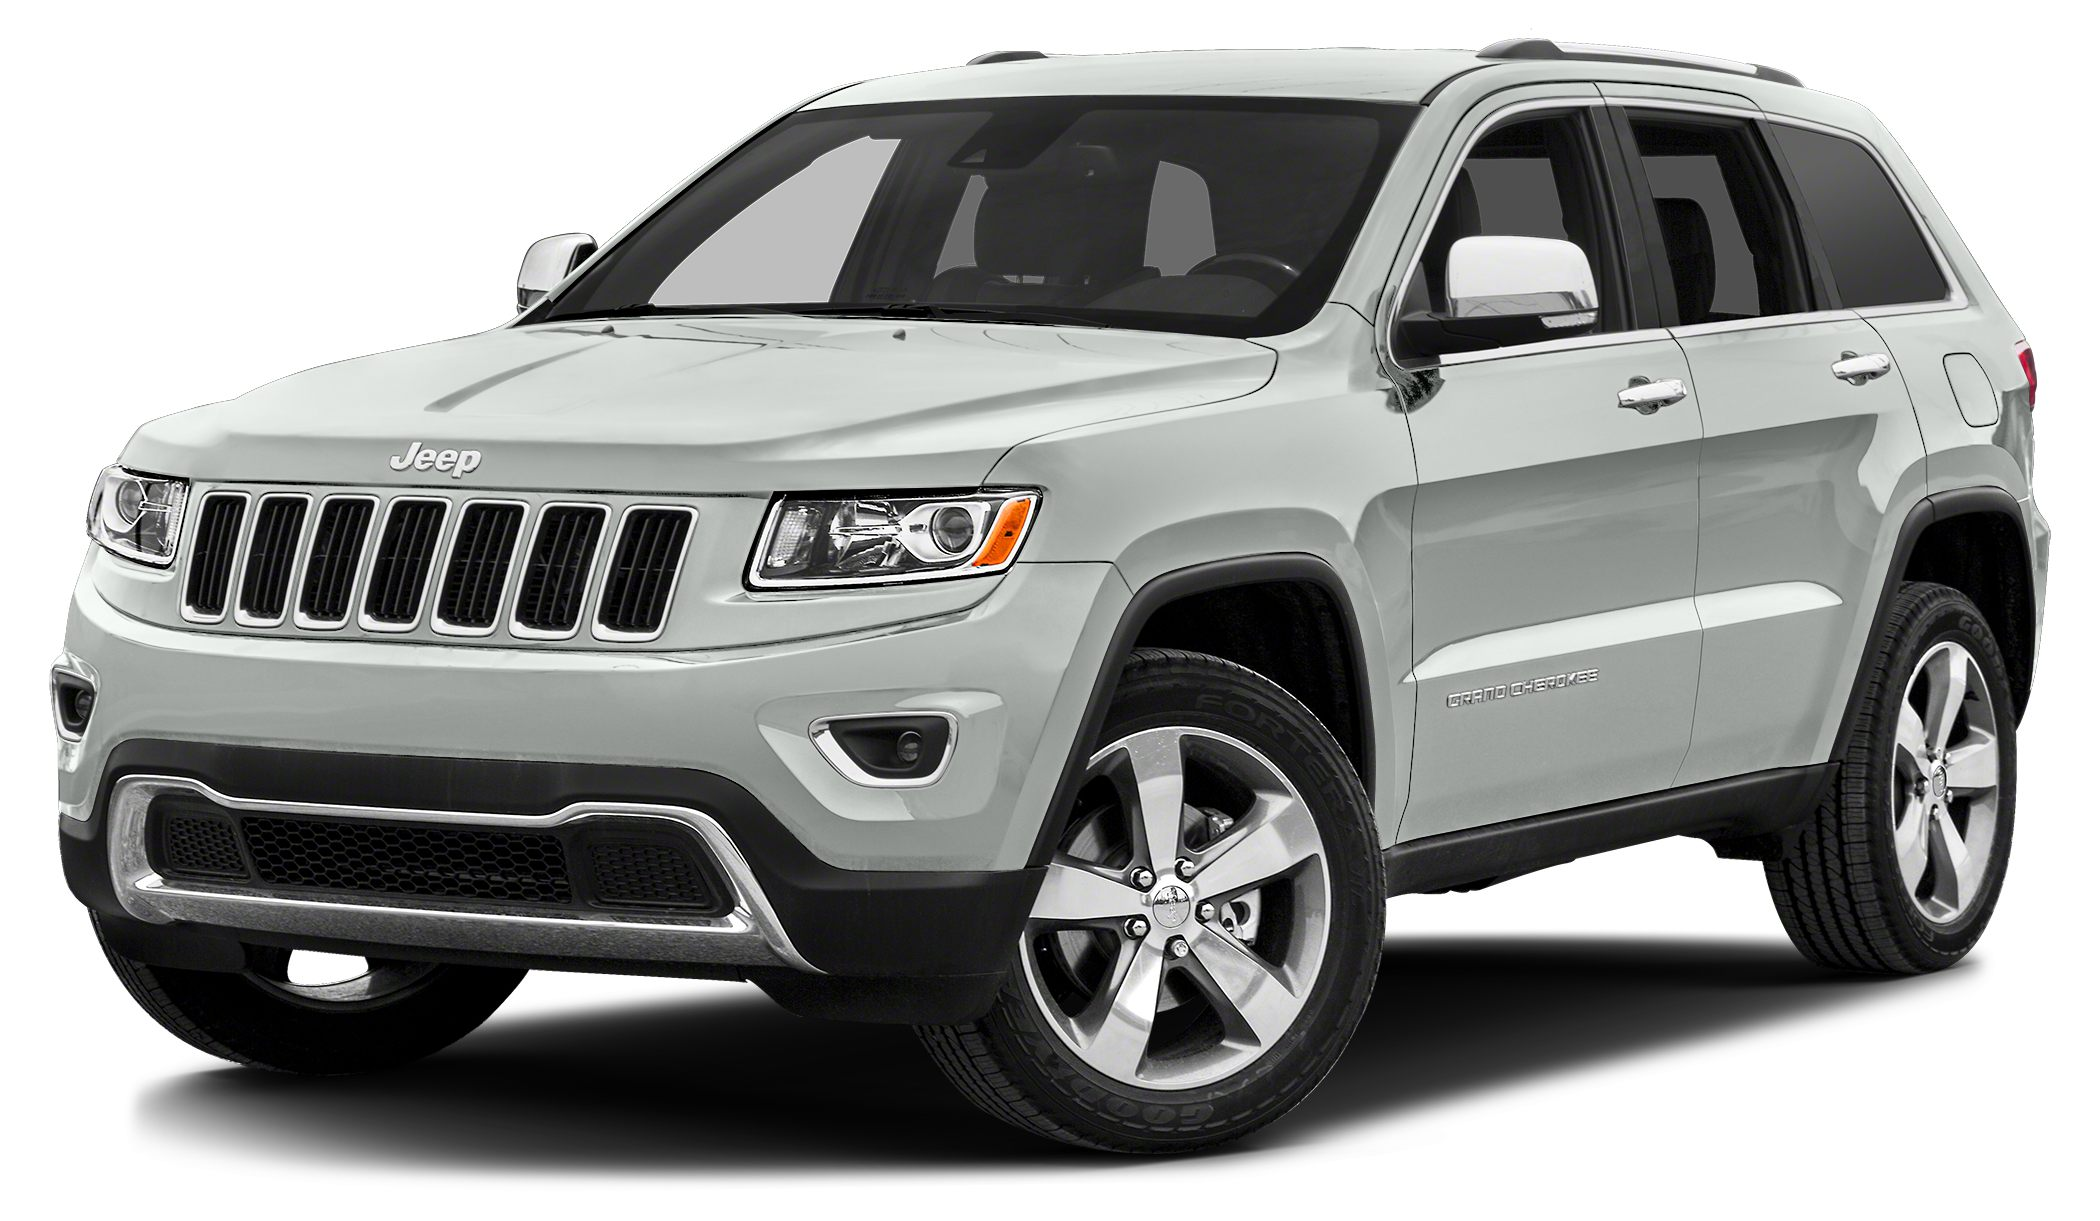 2014 Jeep Grand Cherokee Limited Recent Arrival Priced below KBB Fair Purchase PriceAwards 201